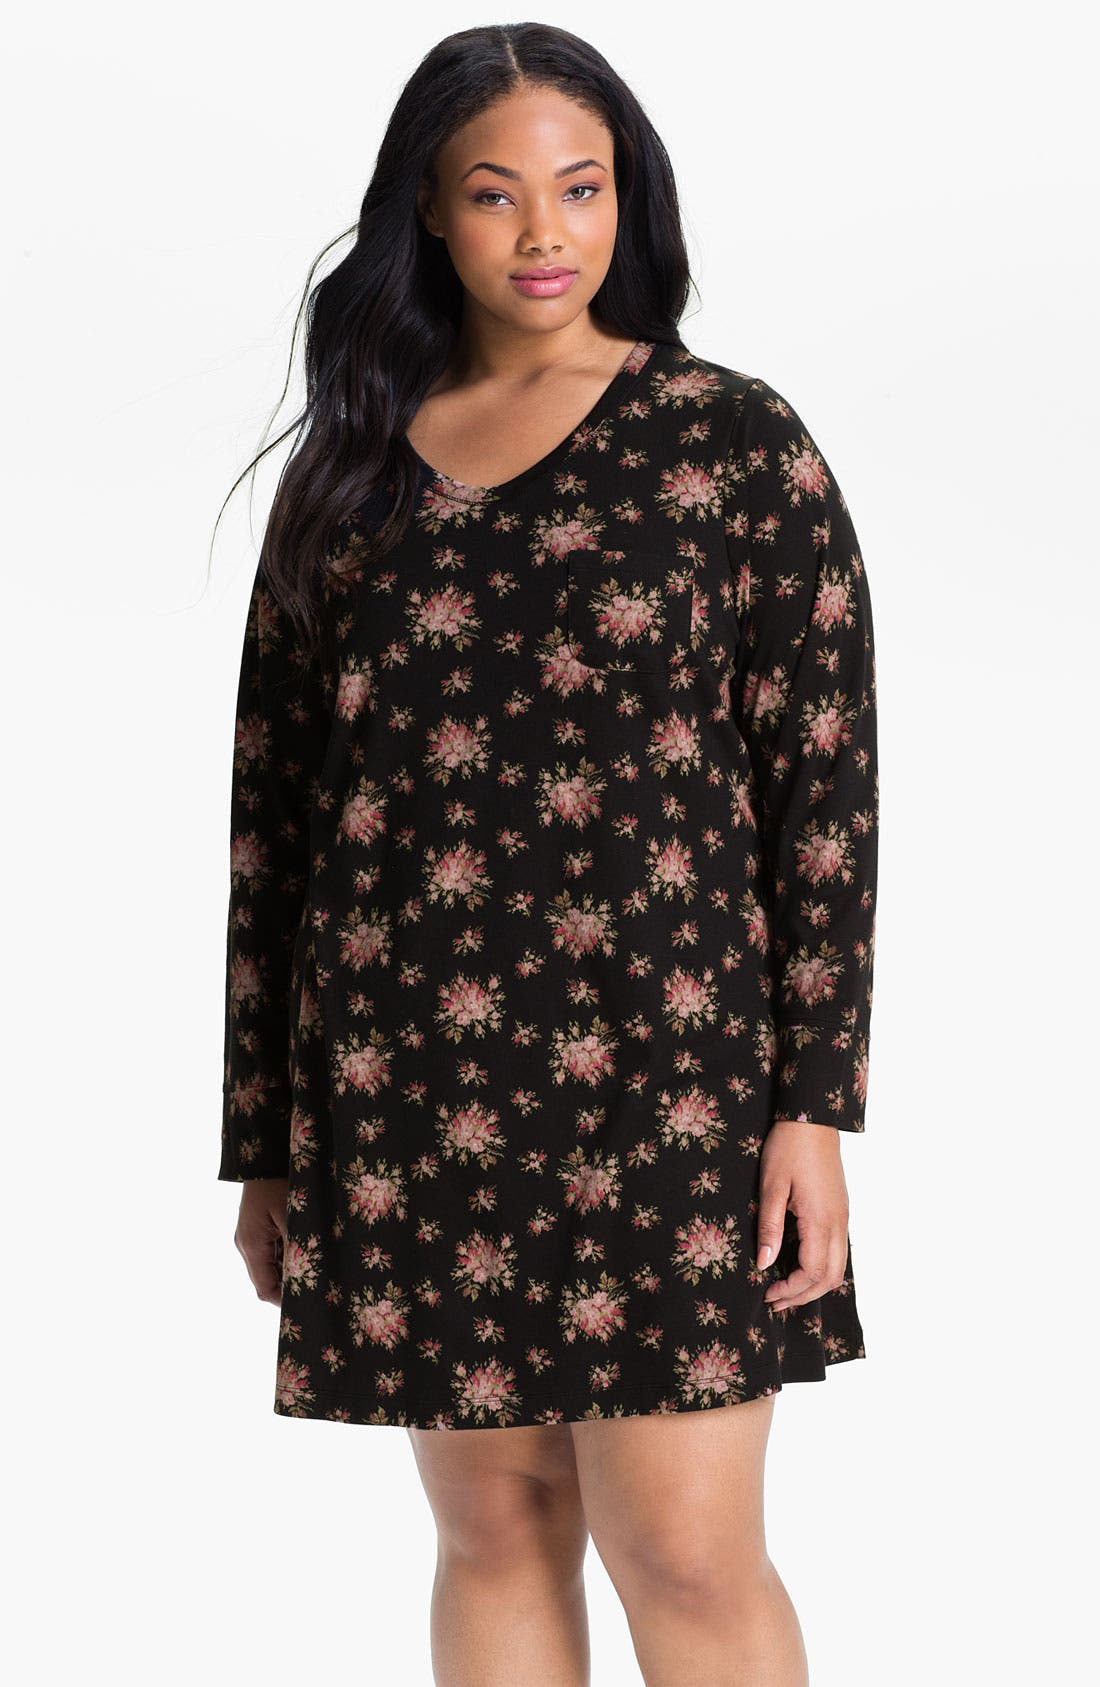 Alternate Image 1 Selected - Carole Hochman Floral Print Interlock Sleep Shirt (Plus)